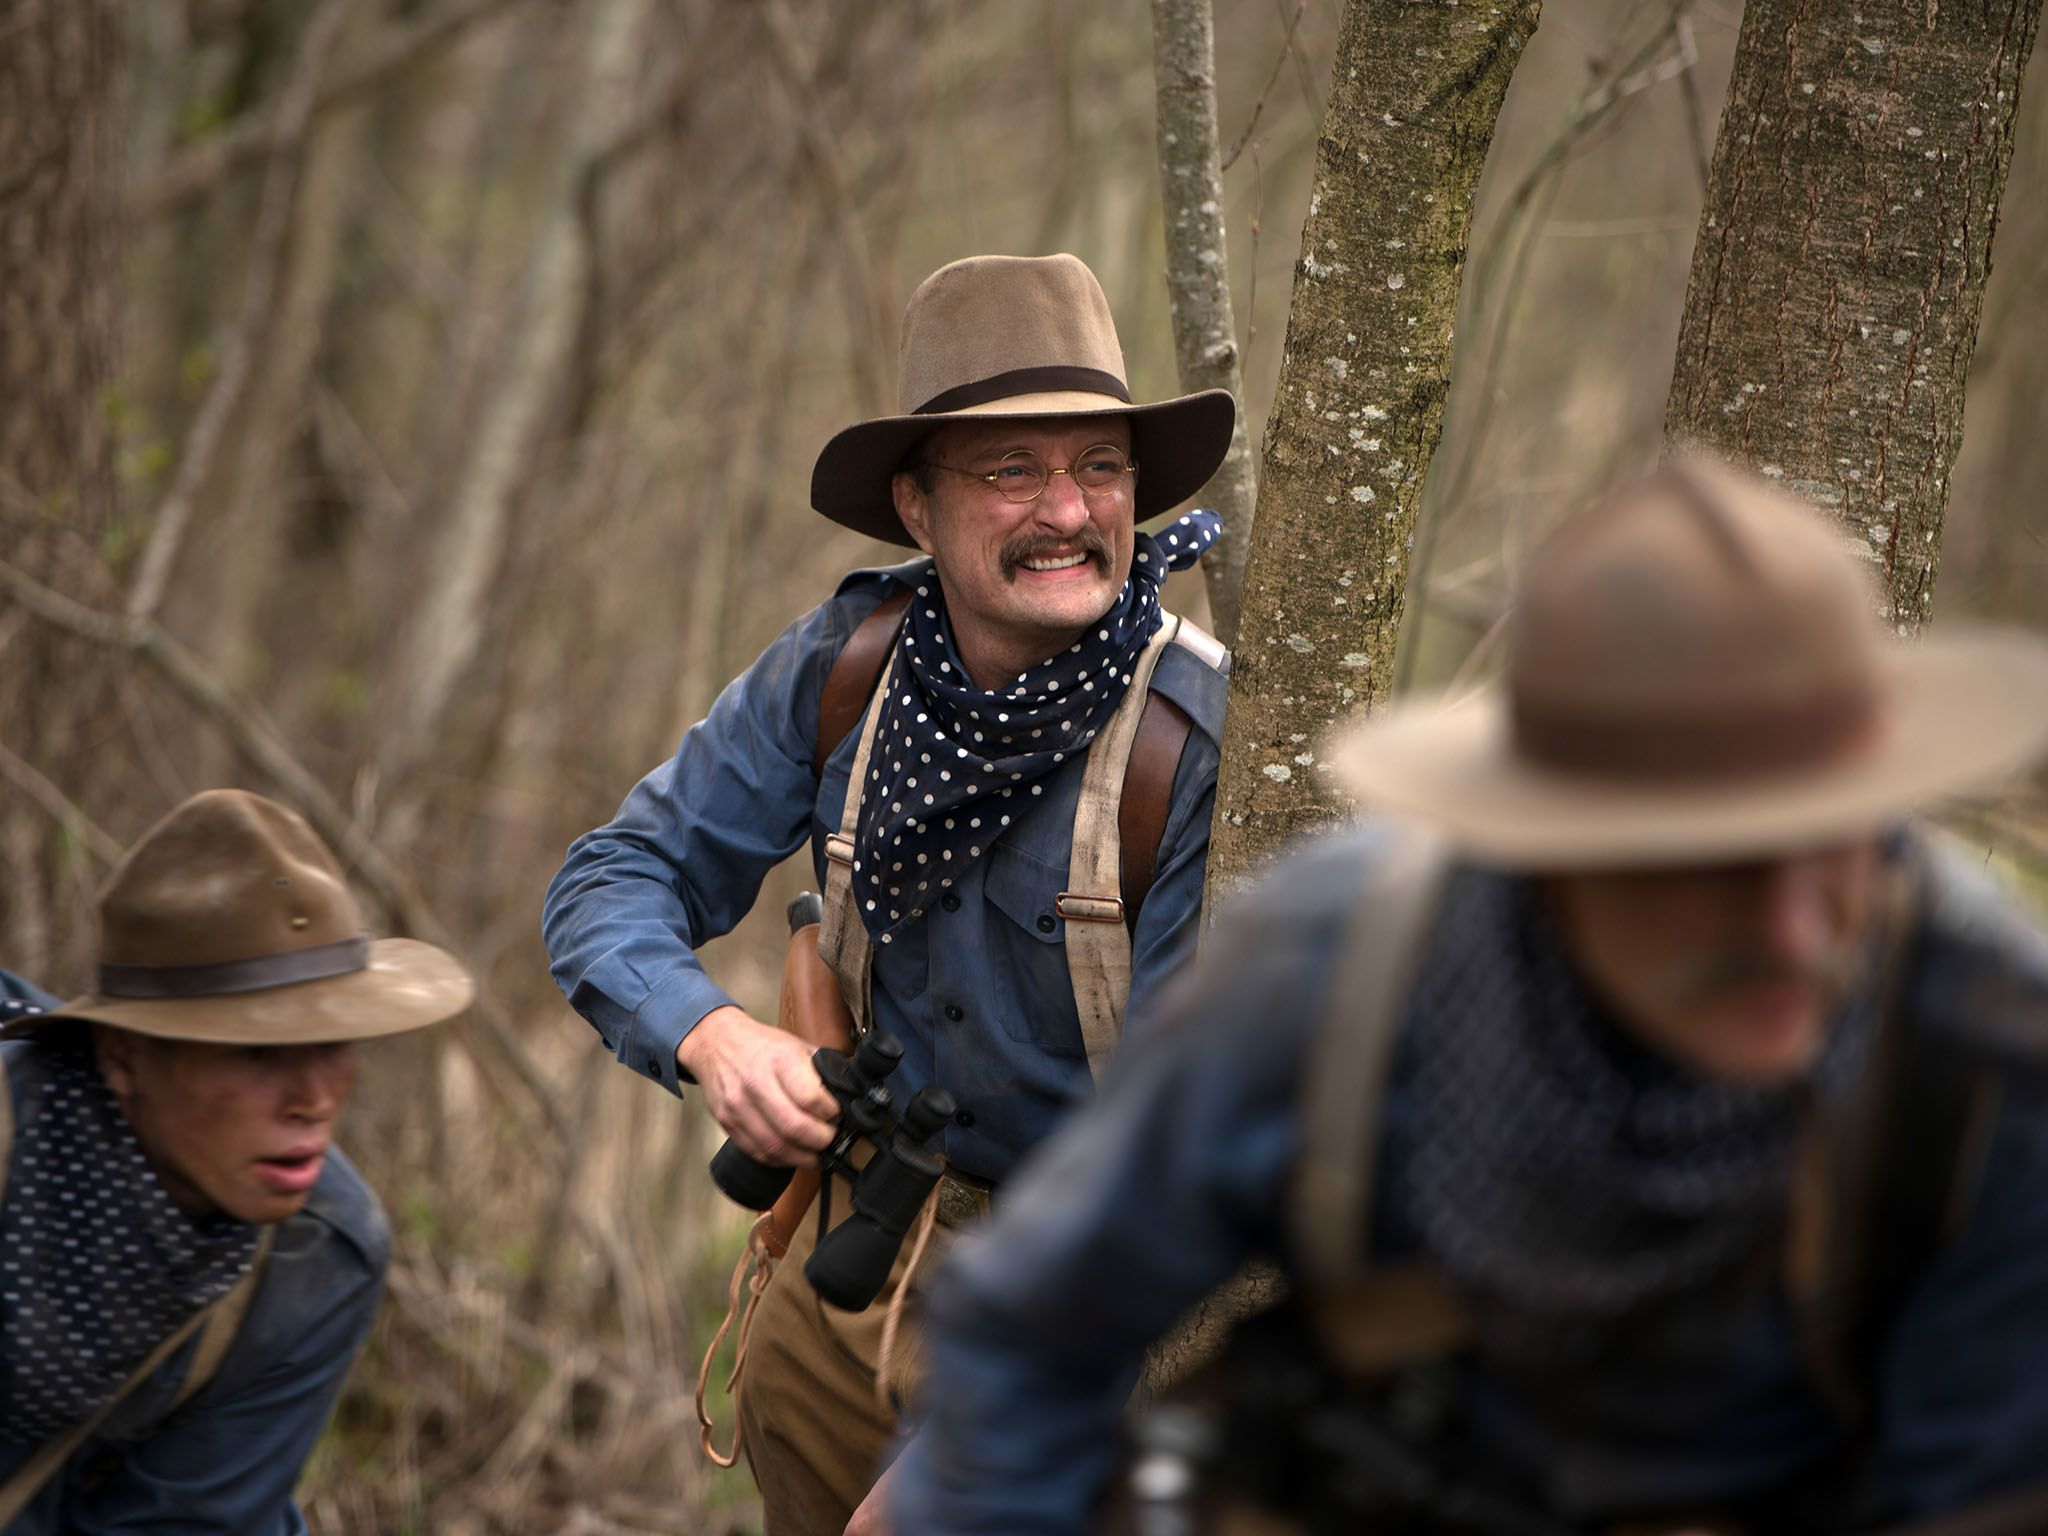 Reenactment- Jack Elliot as Teddy Roosevelt, with two other Rough Riders during The Battle of... [Photo of the day - سپتامبر 2016]